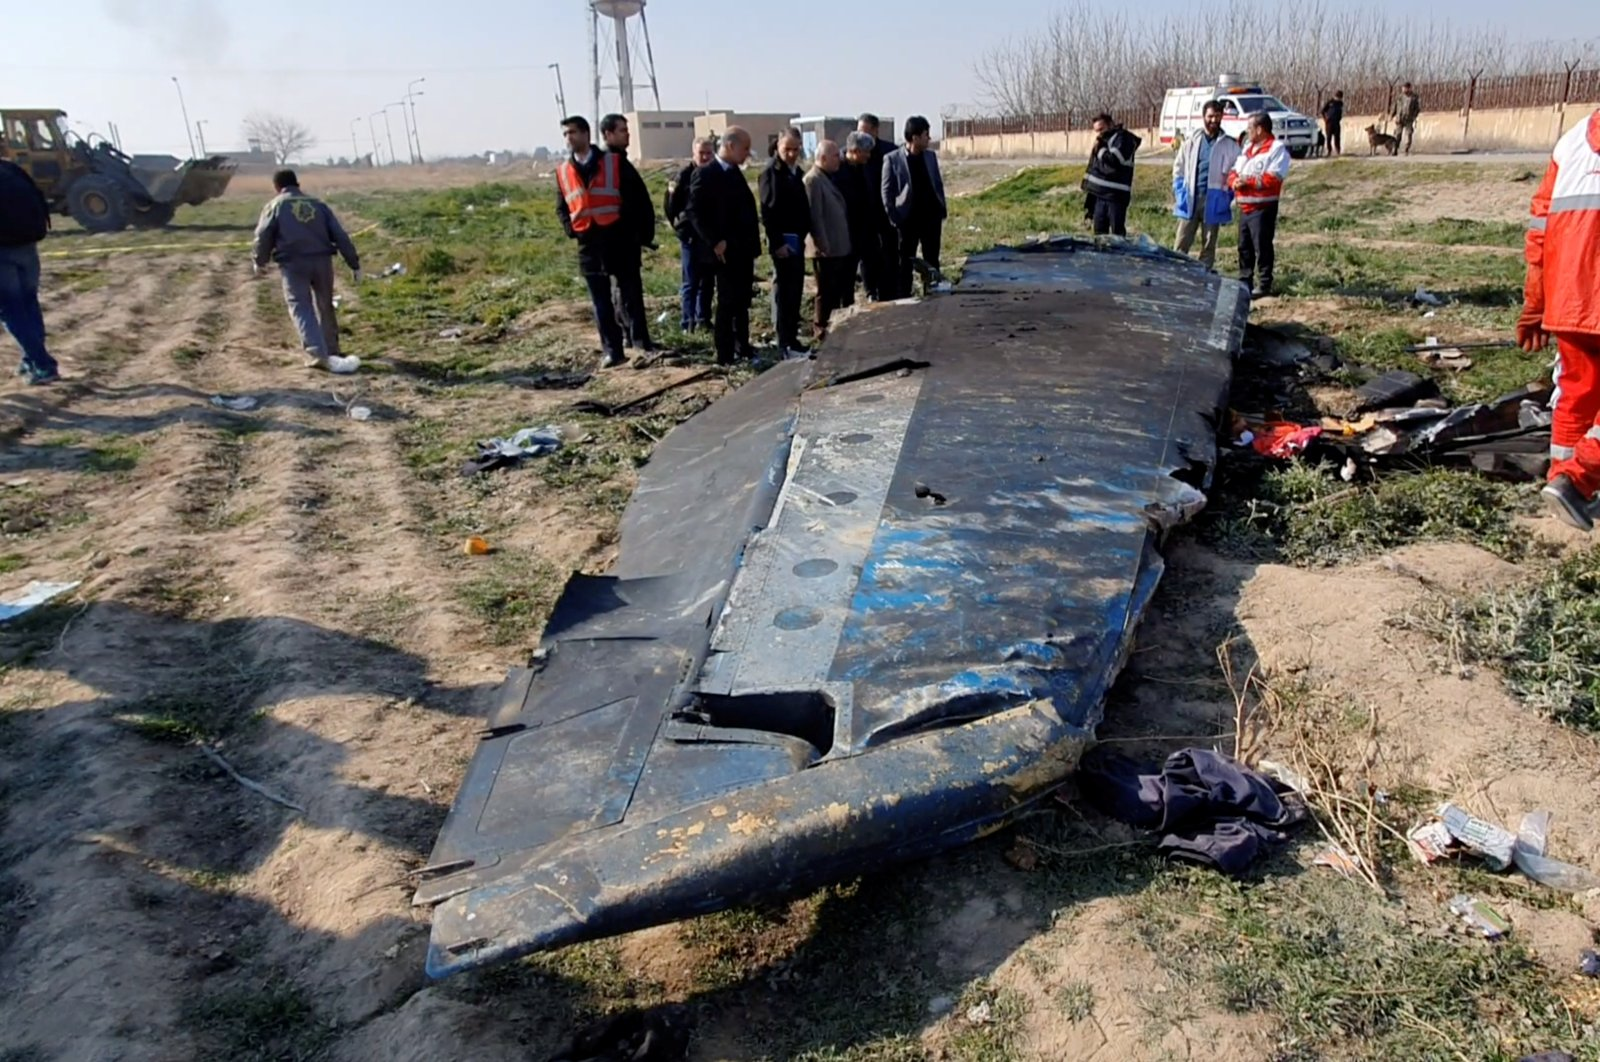 General view of the debris of the Ukraine International Airlines, flight PS752, Boeing 737-800 plane that crashed after take-off from Iran's Imam Khomeini airport, on the outskirts of Tehran, Jan. 8. (Reuters Photo)